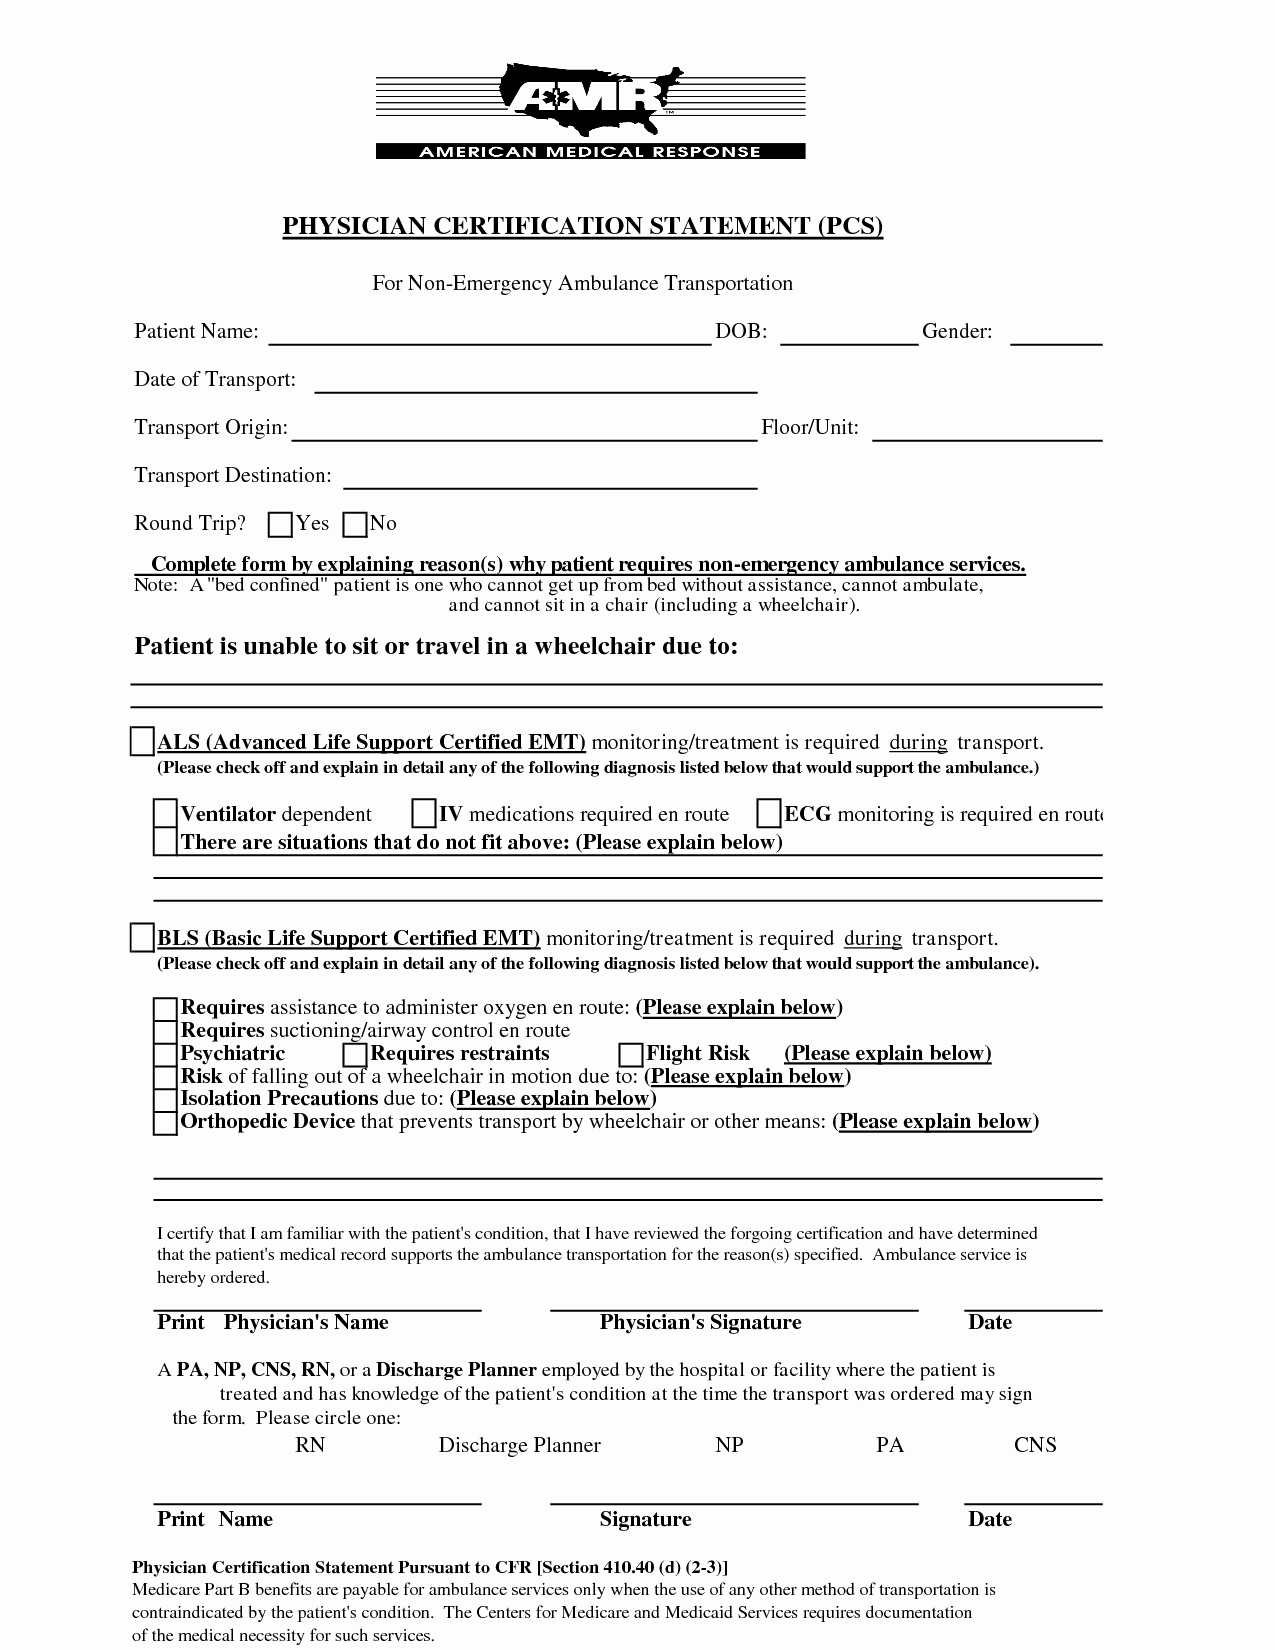 Emergency Room Release form Elegant Hospital Discharge Papers 514 X 705 47 Kb Gif forms